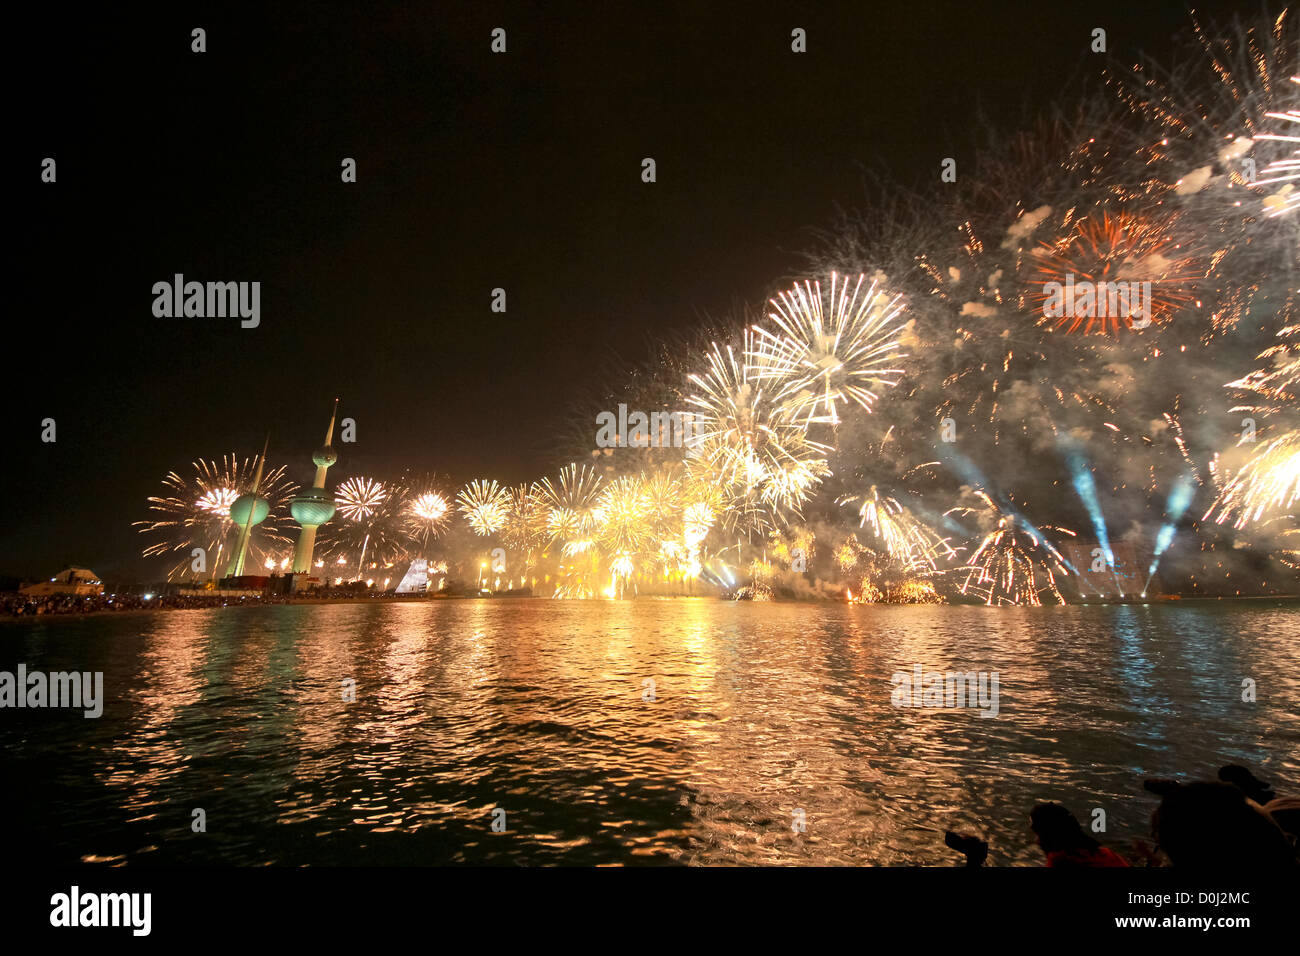 Kuwait Fireworks, Kuwait celebrated 50 years of constitution a fantastic fireworks display, Guinness World Records - Stock Image